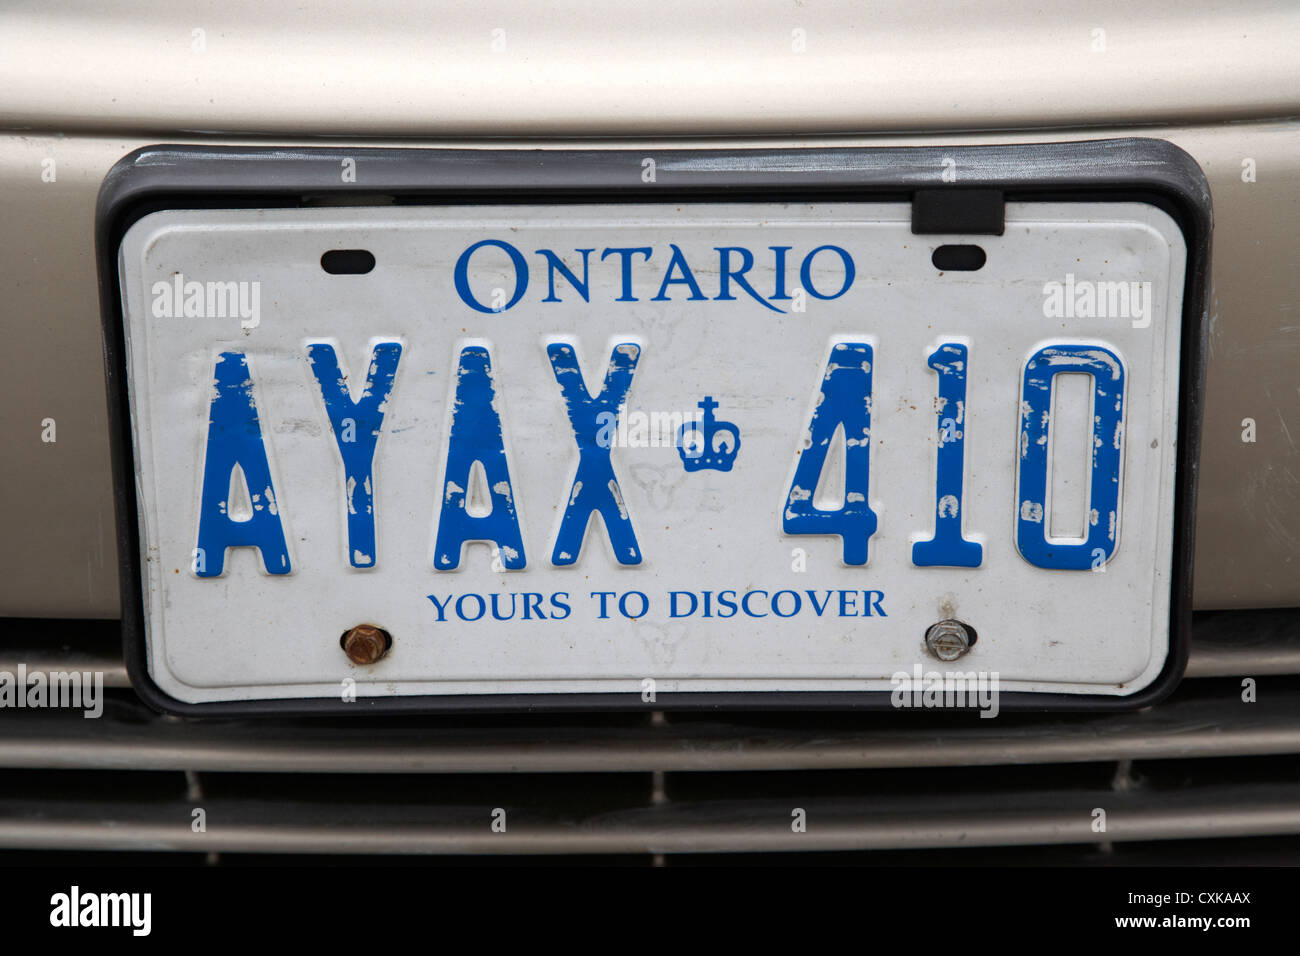 ontario yours to discover license plate canada - Stock Image